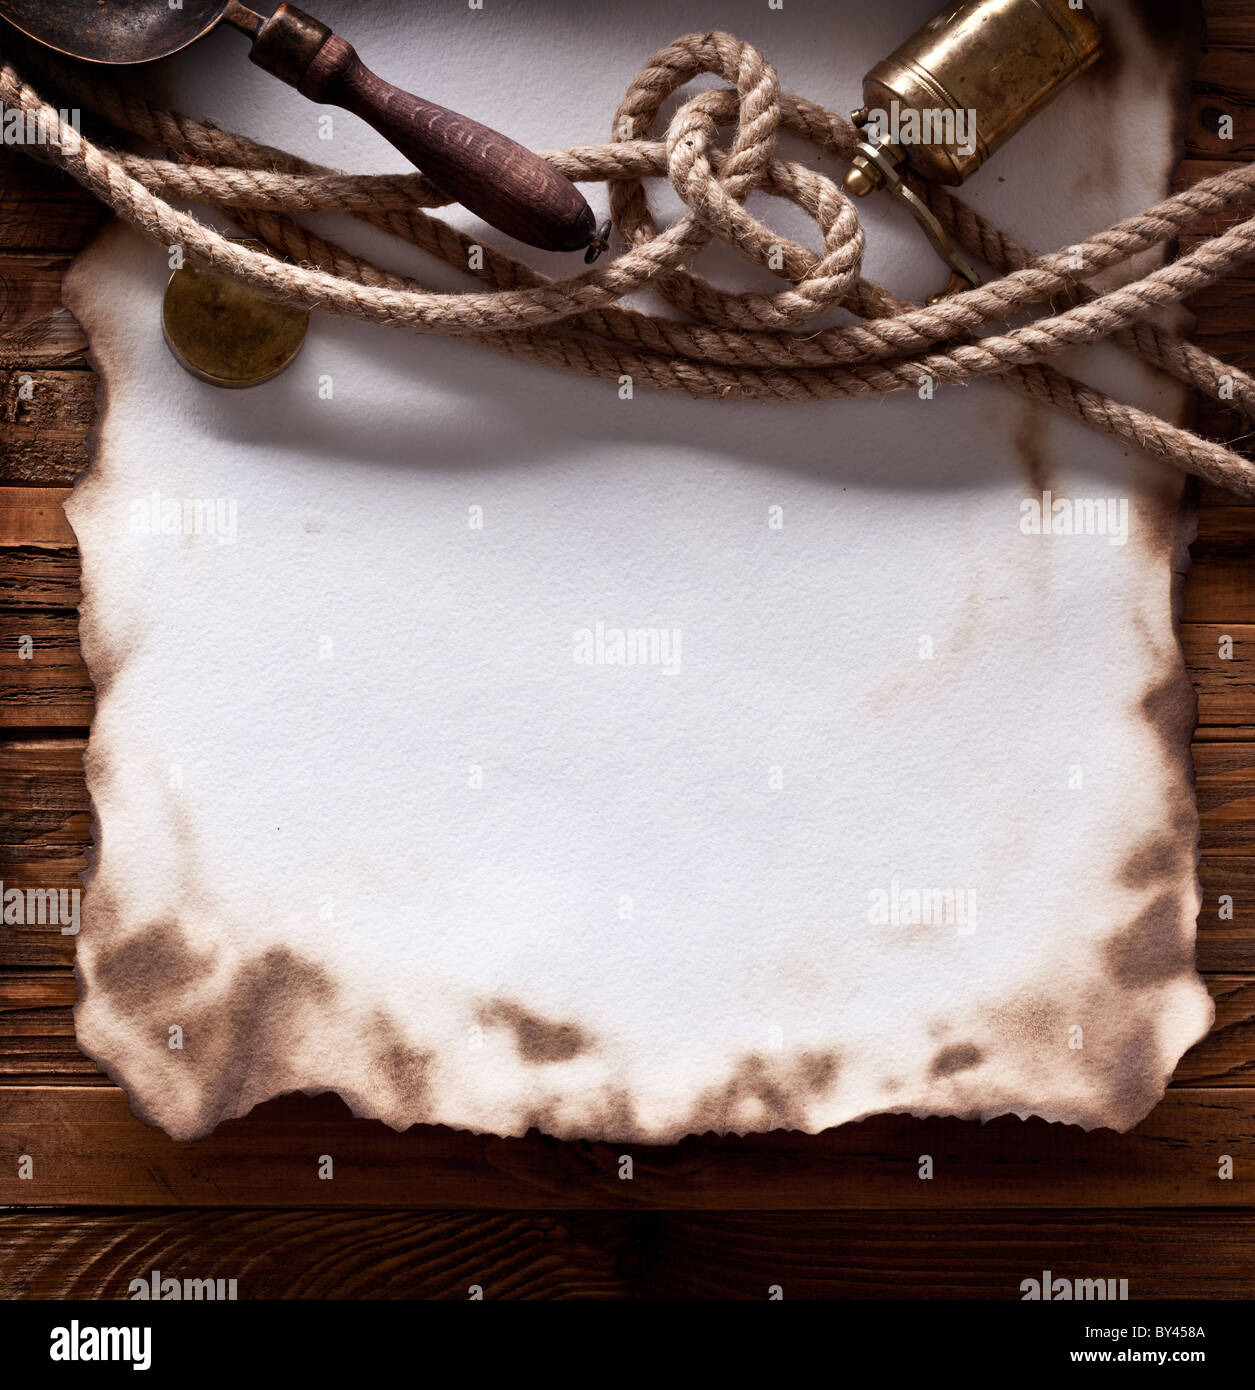 Image of old paper on a wooden board. - Stock Image